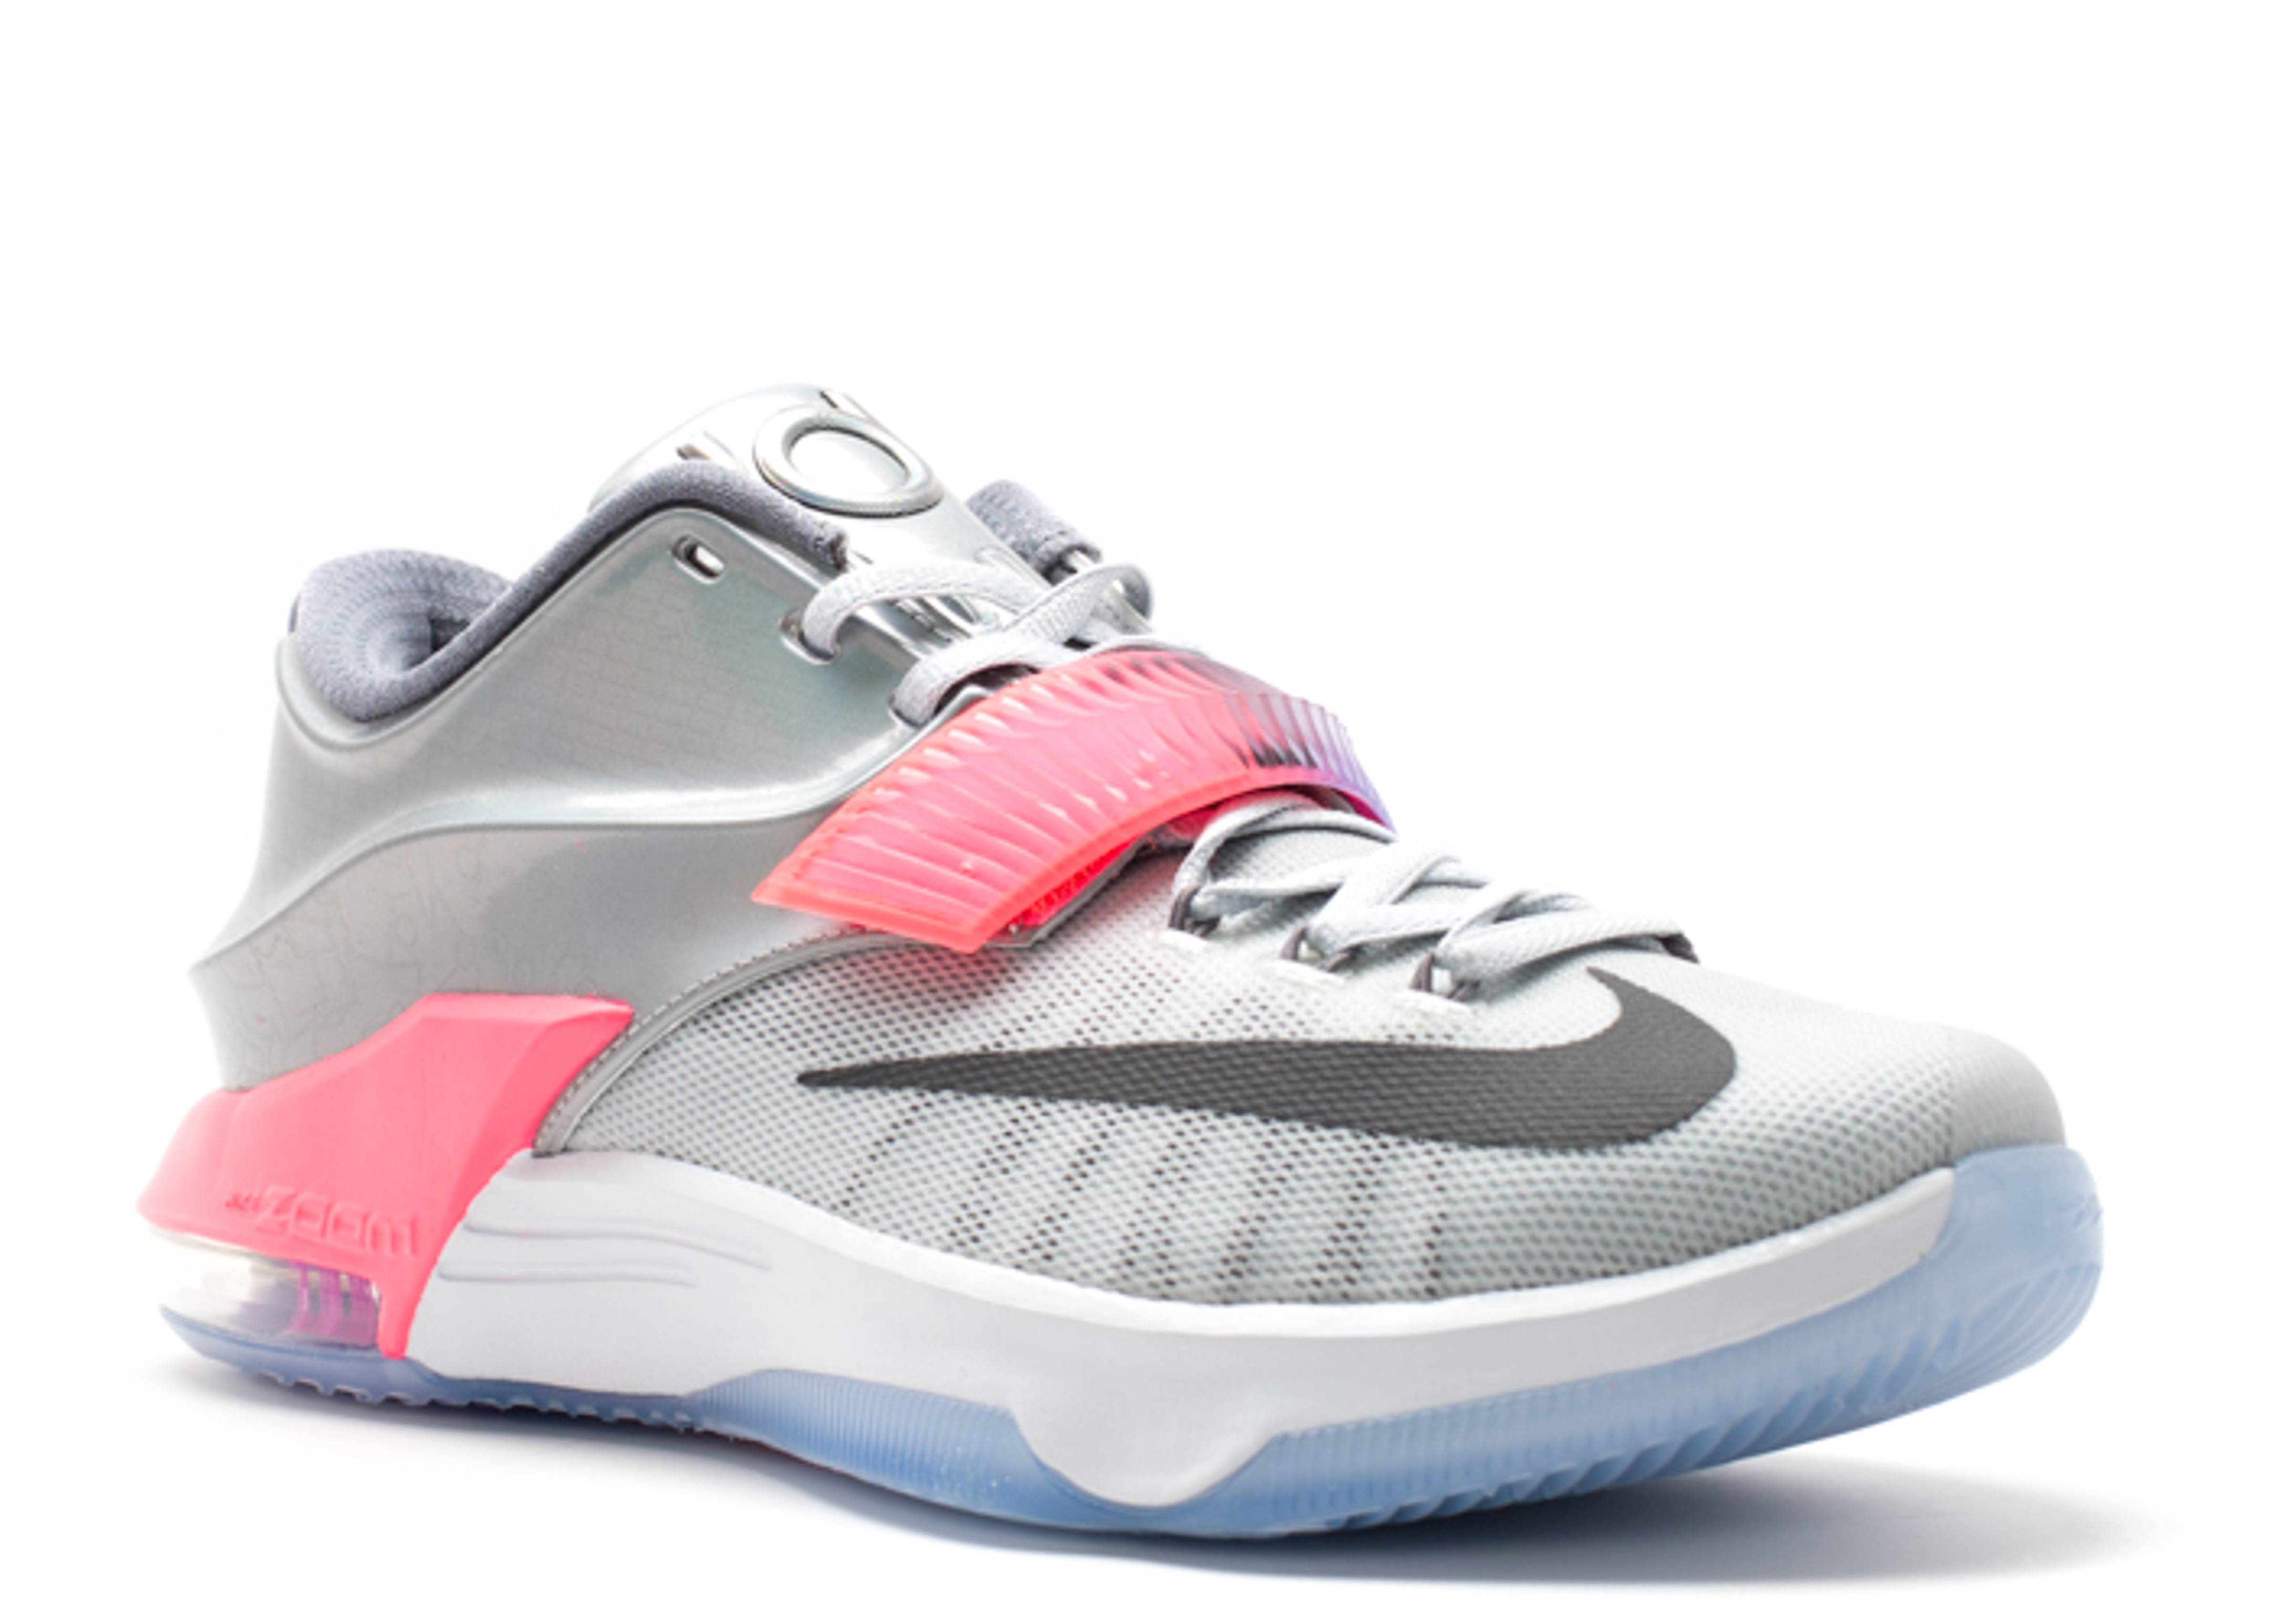 low priced 5a4ee 8a2fc where to buy kd 7 all hvit yeezys 1a046 36dff